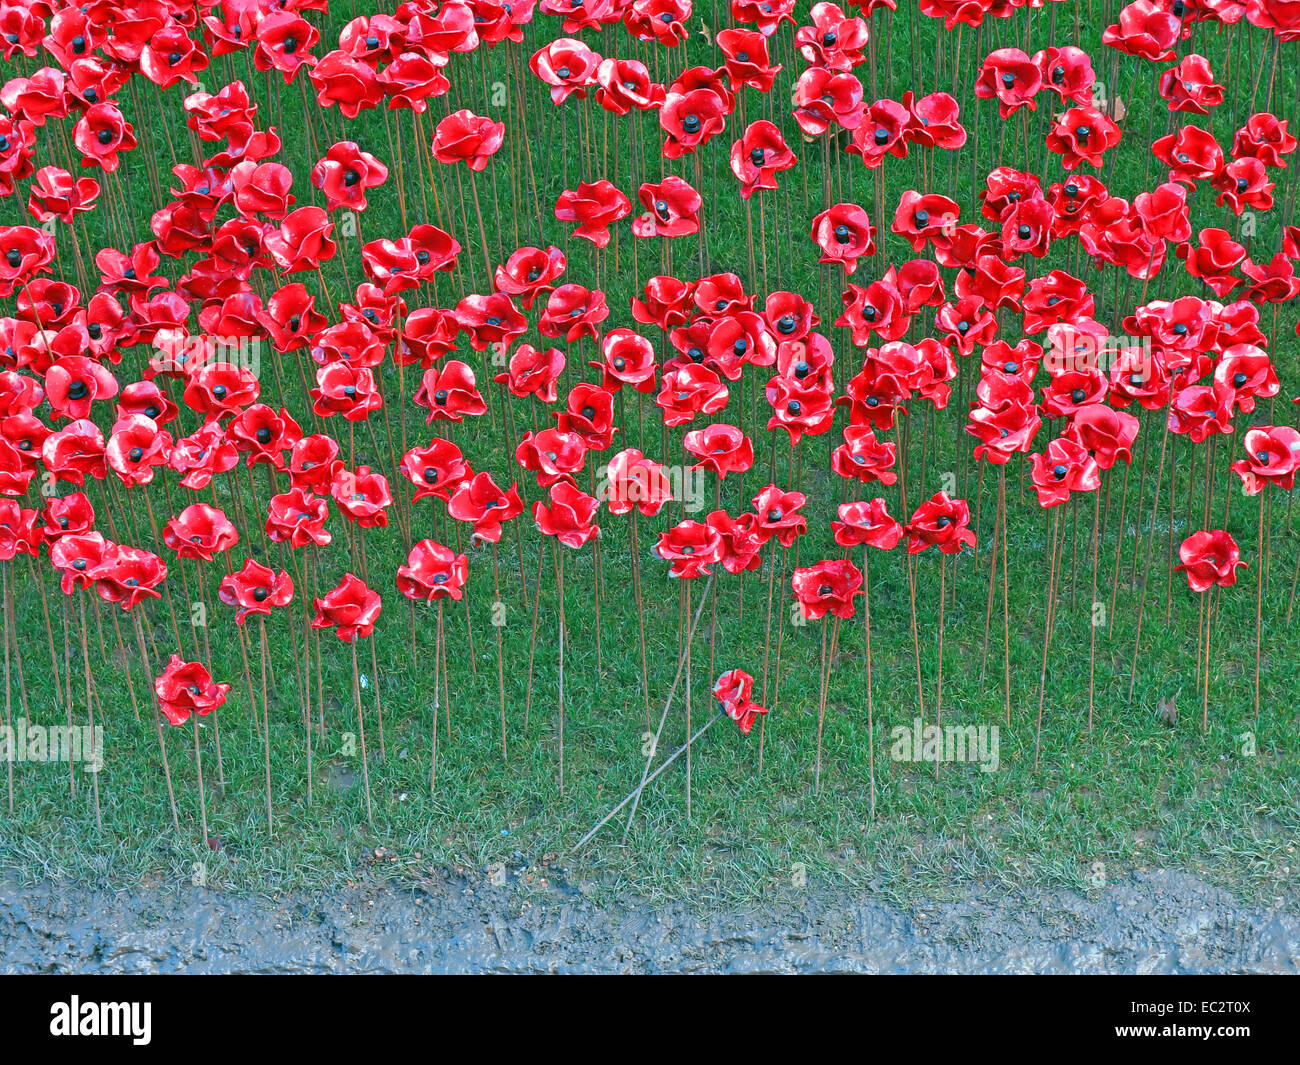 Detail of Blood Swept Lands and Seas of Red poppies, at The Tower of London, England UK Stock Photo